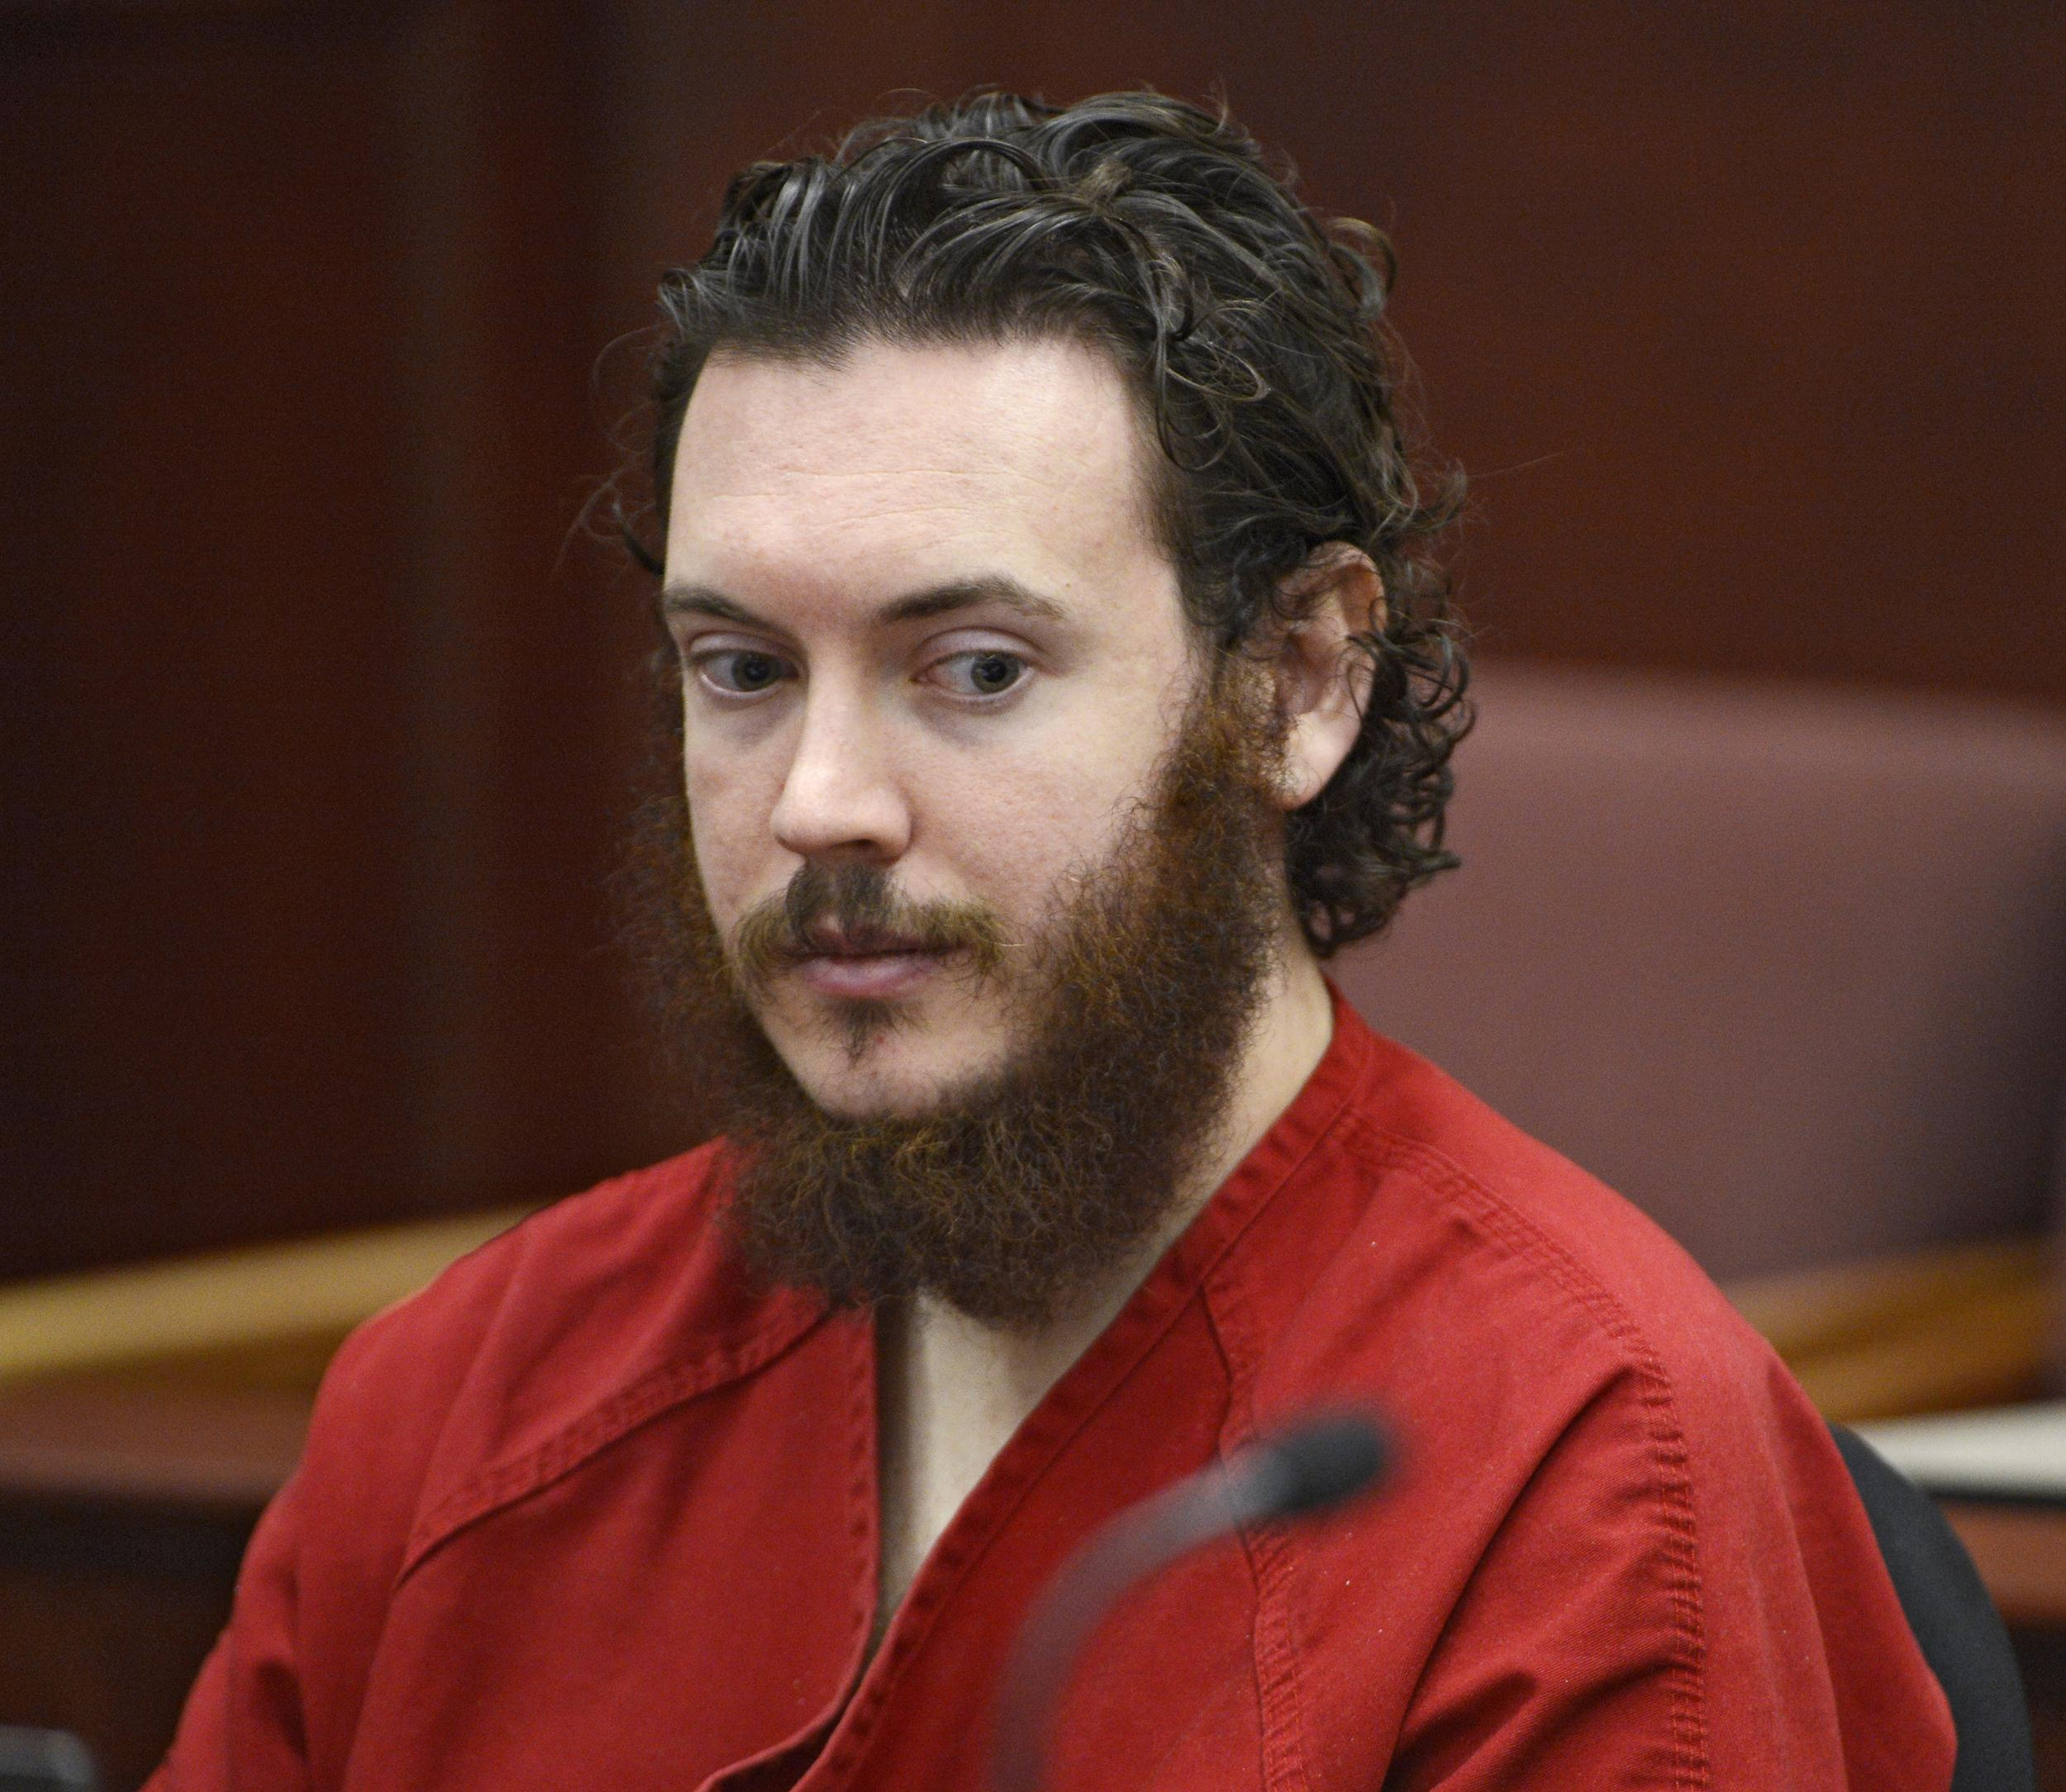 12 Killed 58 Injured In Colo Theater Shooting: James Holmes: Parents Make Plea For Aurora Gunman's Life